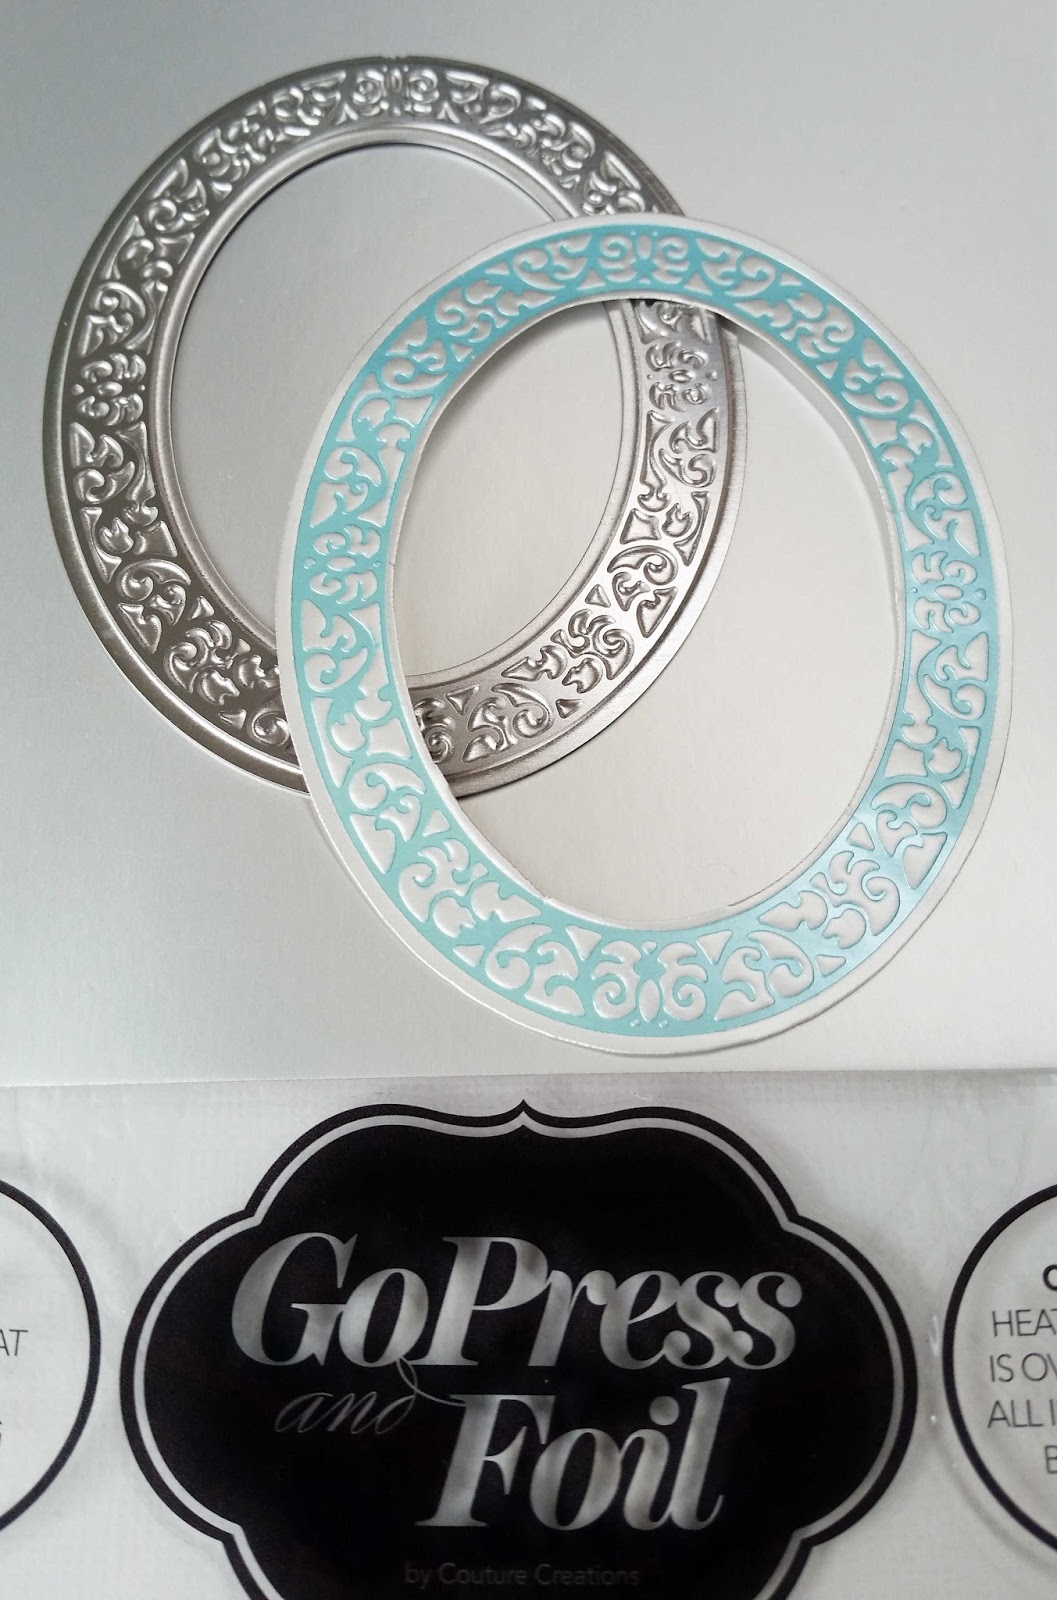 how to use go press and foil